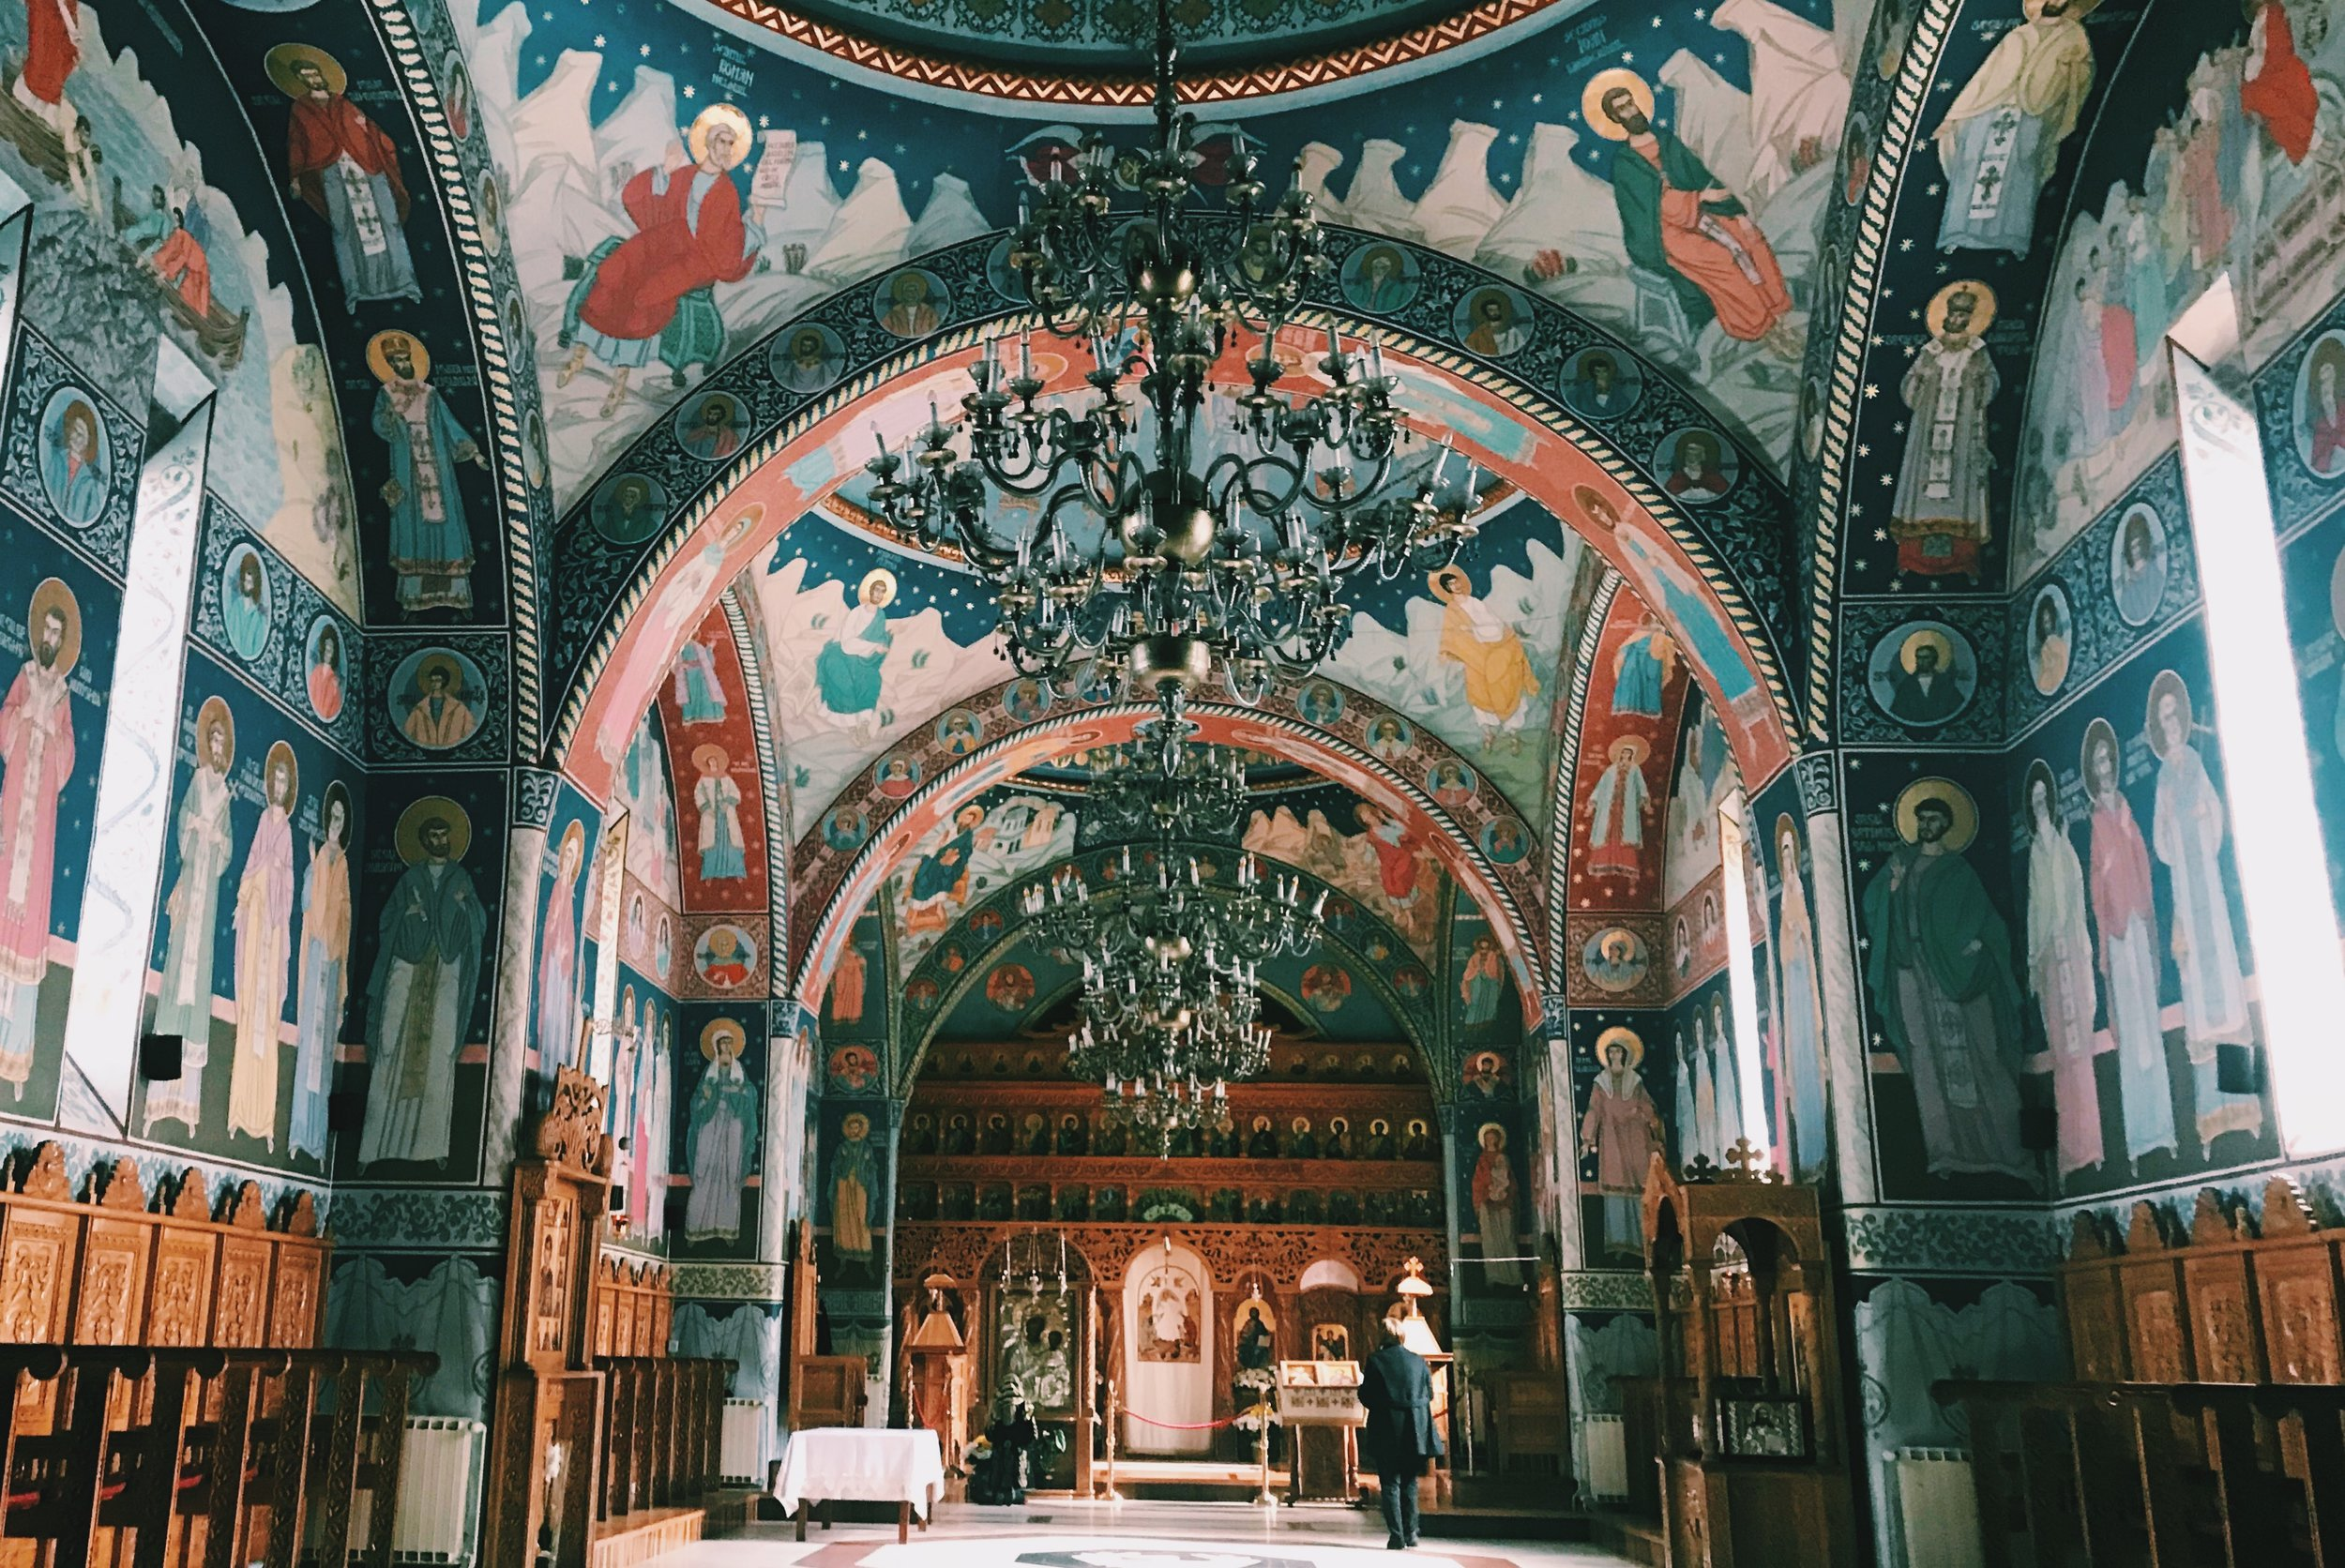 Romanian painted monasteries. One of the highlights of the year.